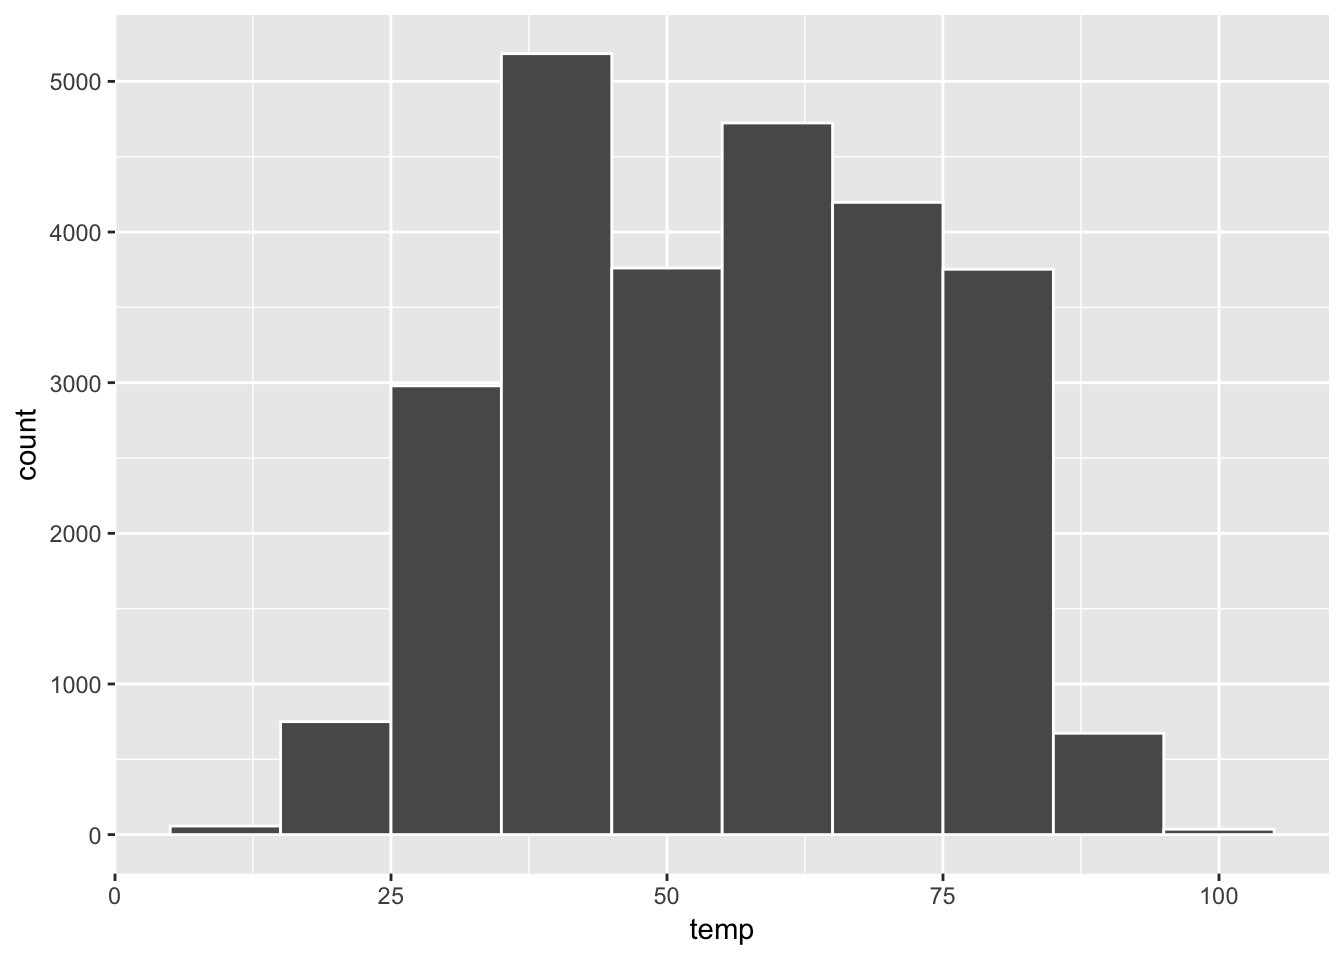 Histogram of Hourly Temperature Recordings from NYC in 2013 - Binwidth = 10